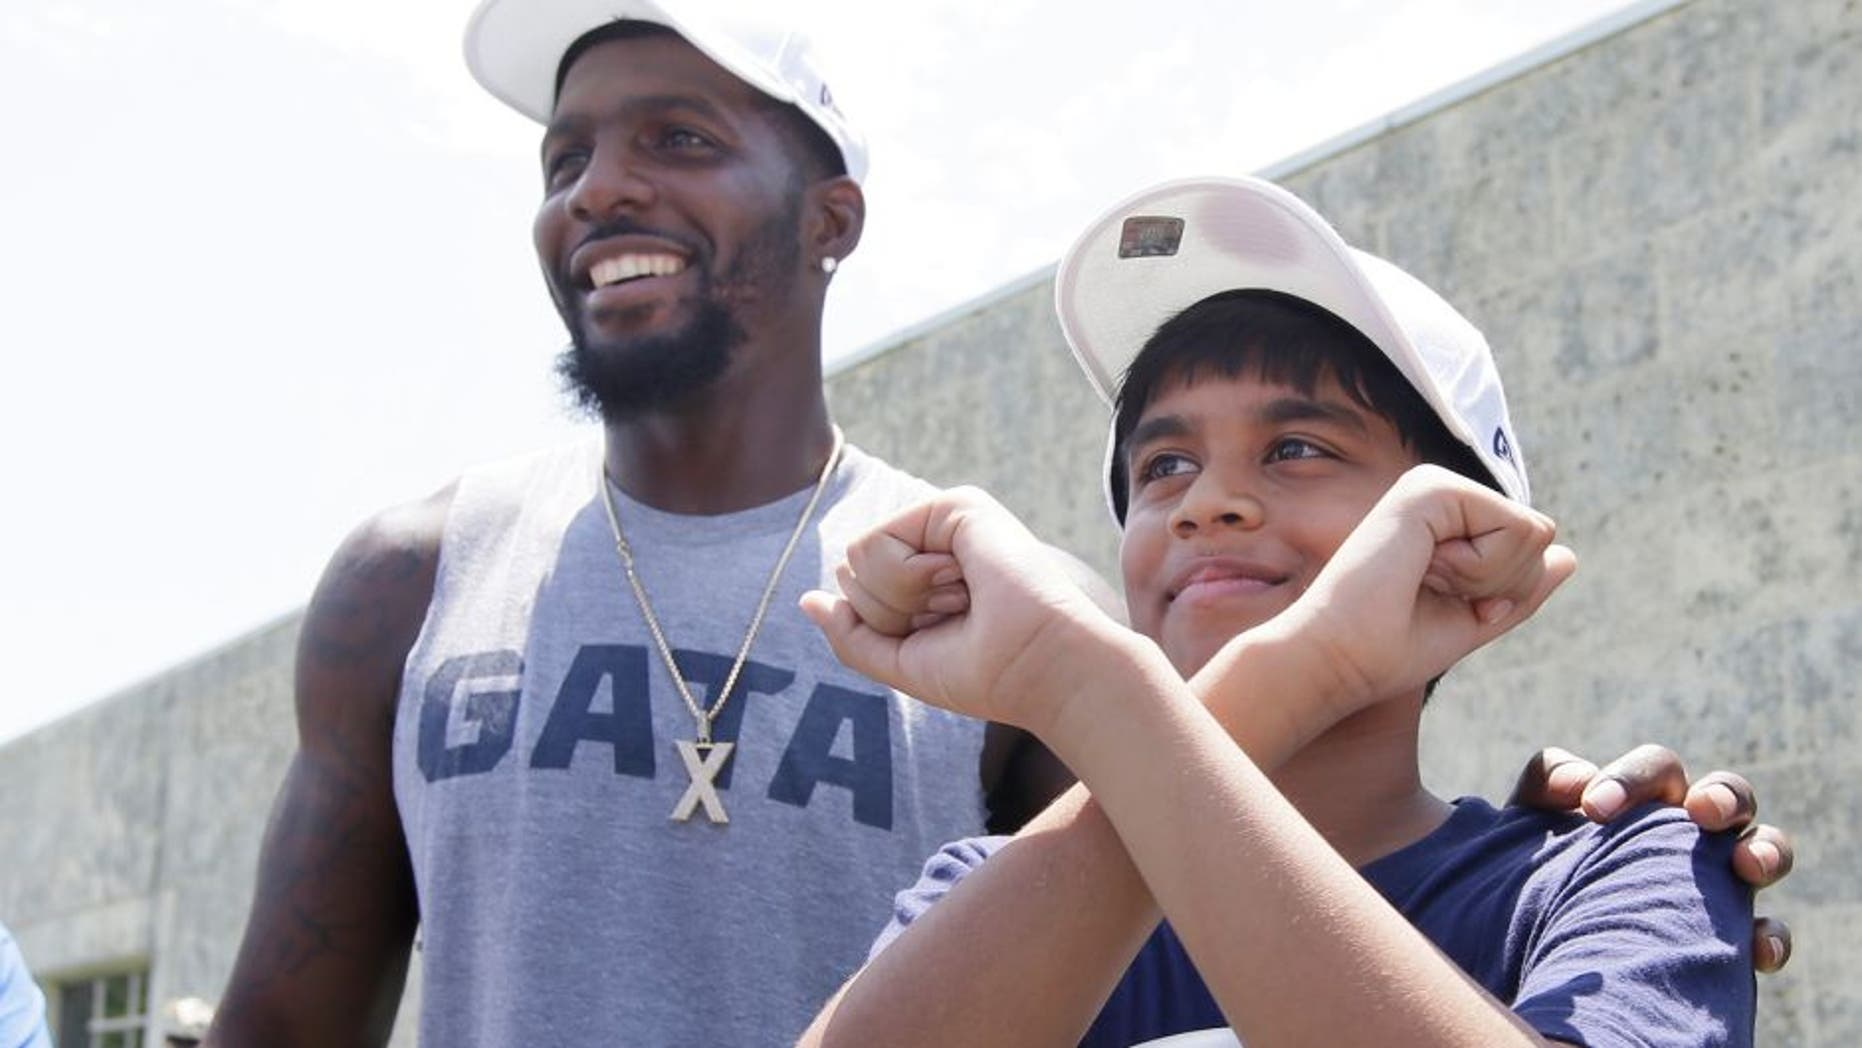 Dallas Cowboys wide receiver Dez Bryant, left, stands by as 11-year-old spelling bee champion Nahir Janga of Austin, throws up a celebratory 'X' at the NFL football team's minicamp at Valley Ranch in Irving, Texas, Wednesday, June 15, 2016. Janga was on hand to visit with the Cowboys and meet Bryant who inspired him to throw up an 'X' when he won the spelling bee. (AP Photo/LM Otero)